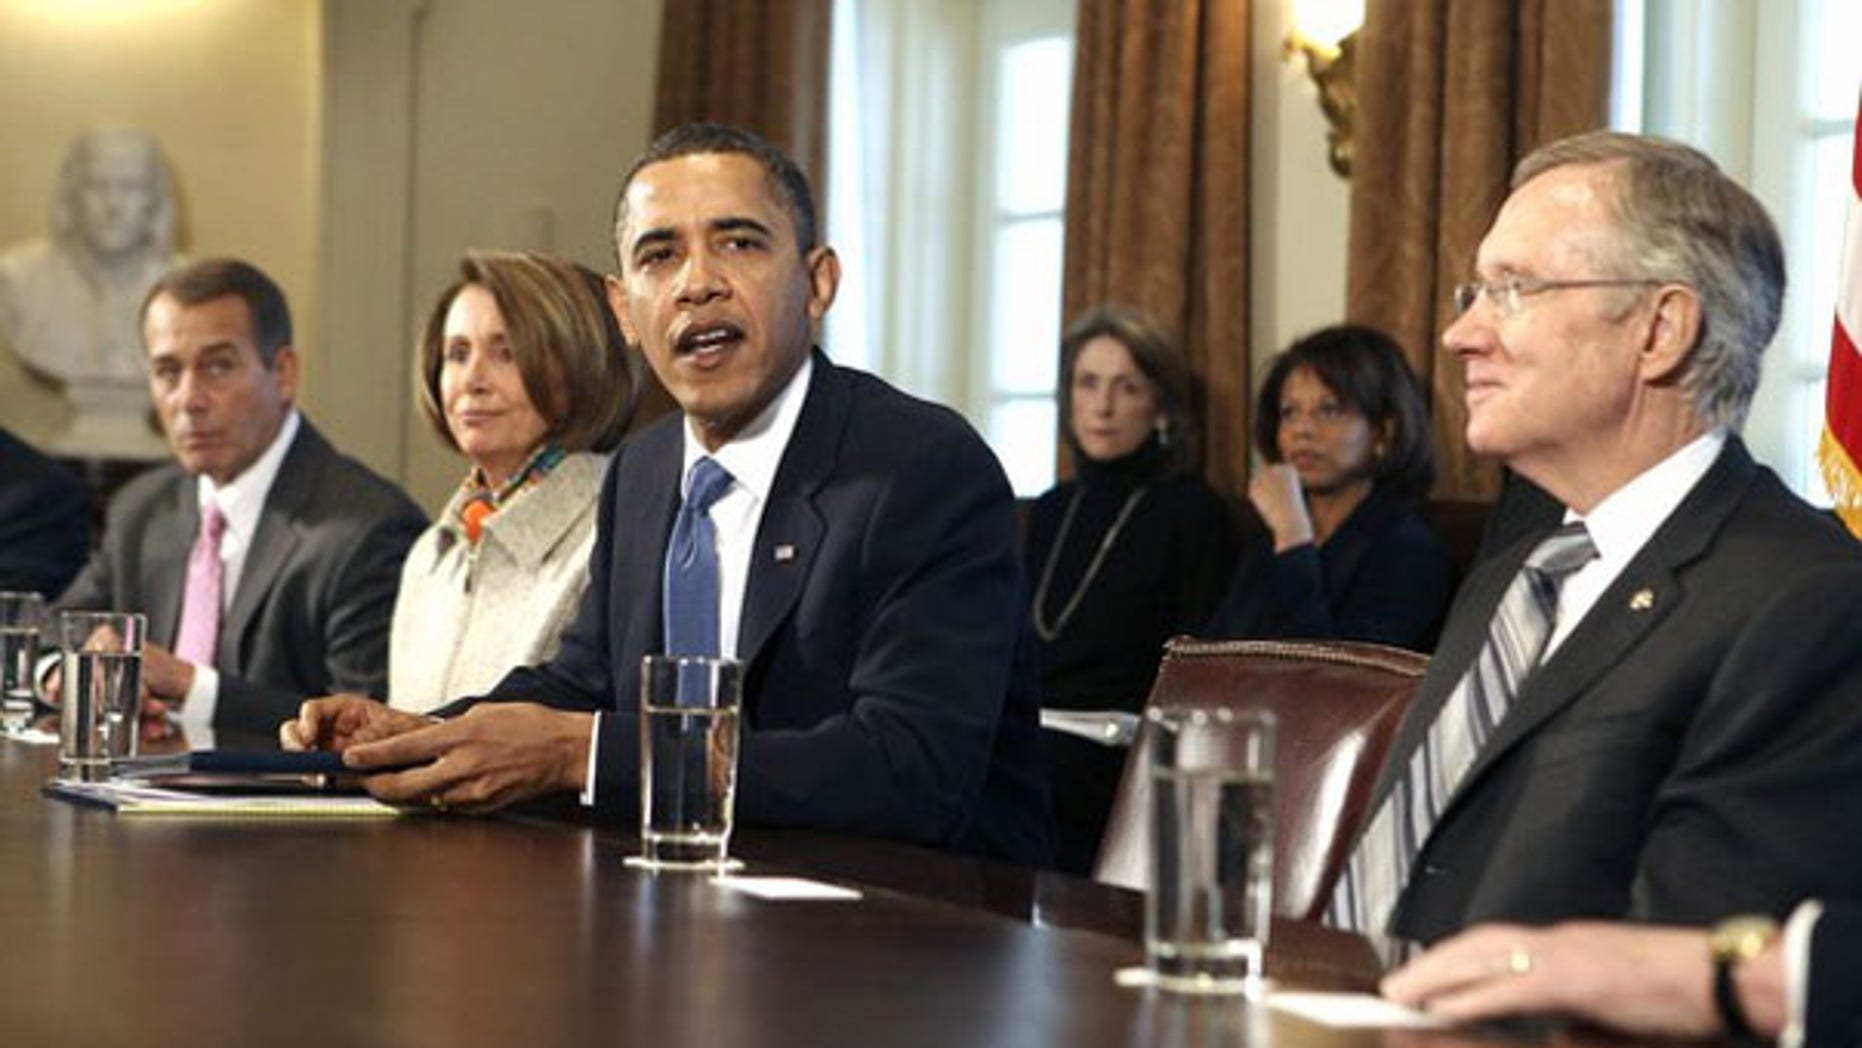 President Obama talks with congressional leaders about the economy in the Cabinet Room of the White House Feb. 9. (Reuters Photo)